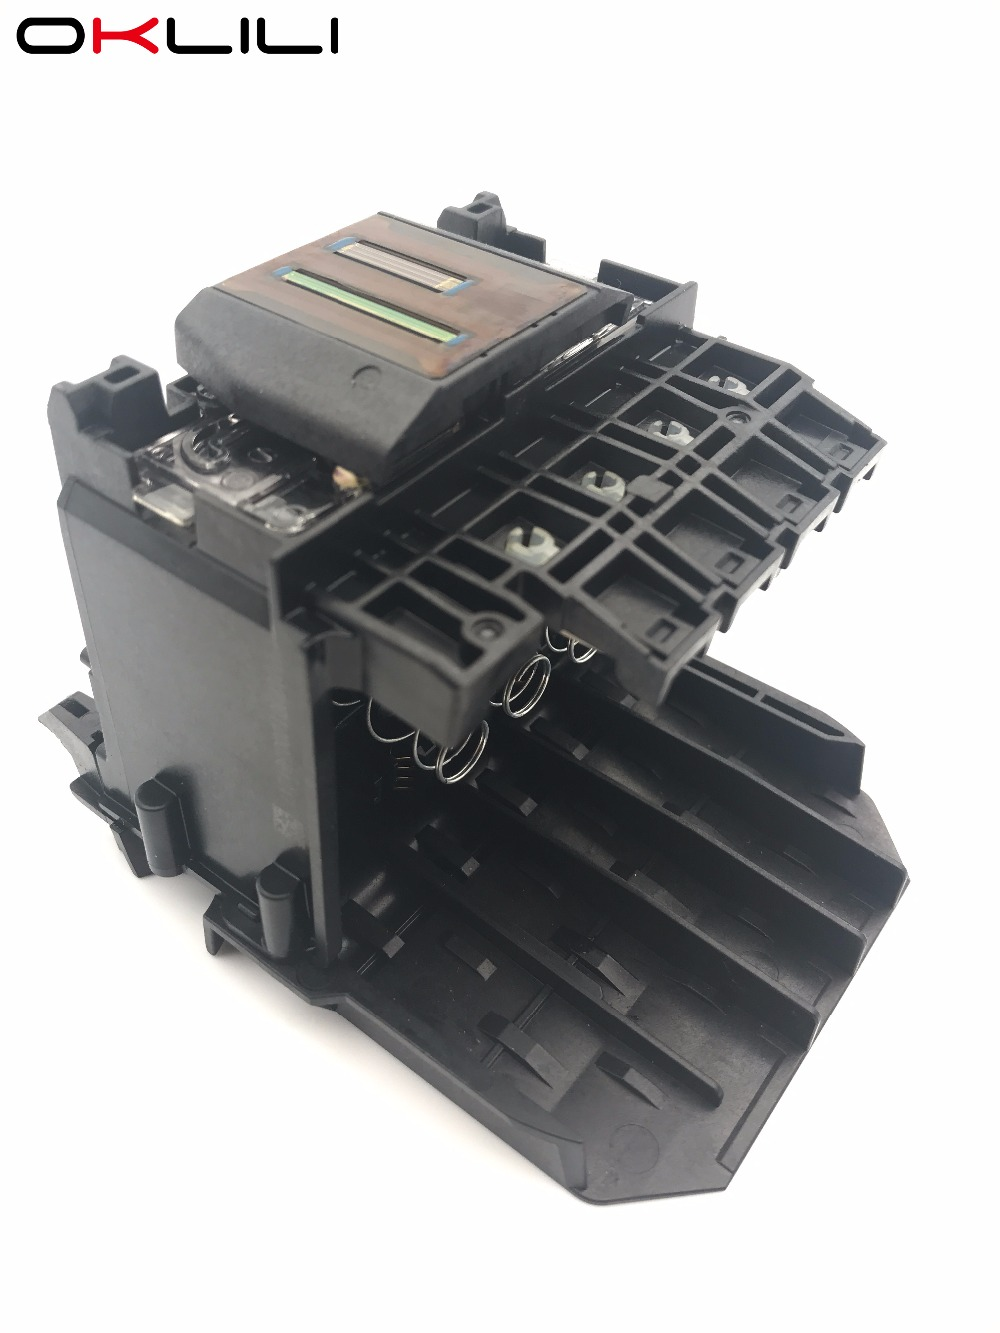 1X CB863-80002A 932 933 932XL 933XL Printhead printer HP Officejet - Ofis elektronikası - Fotoqrafiya 4